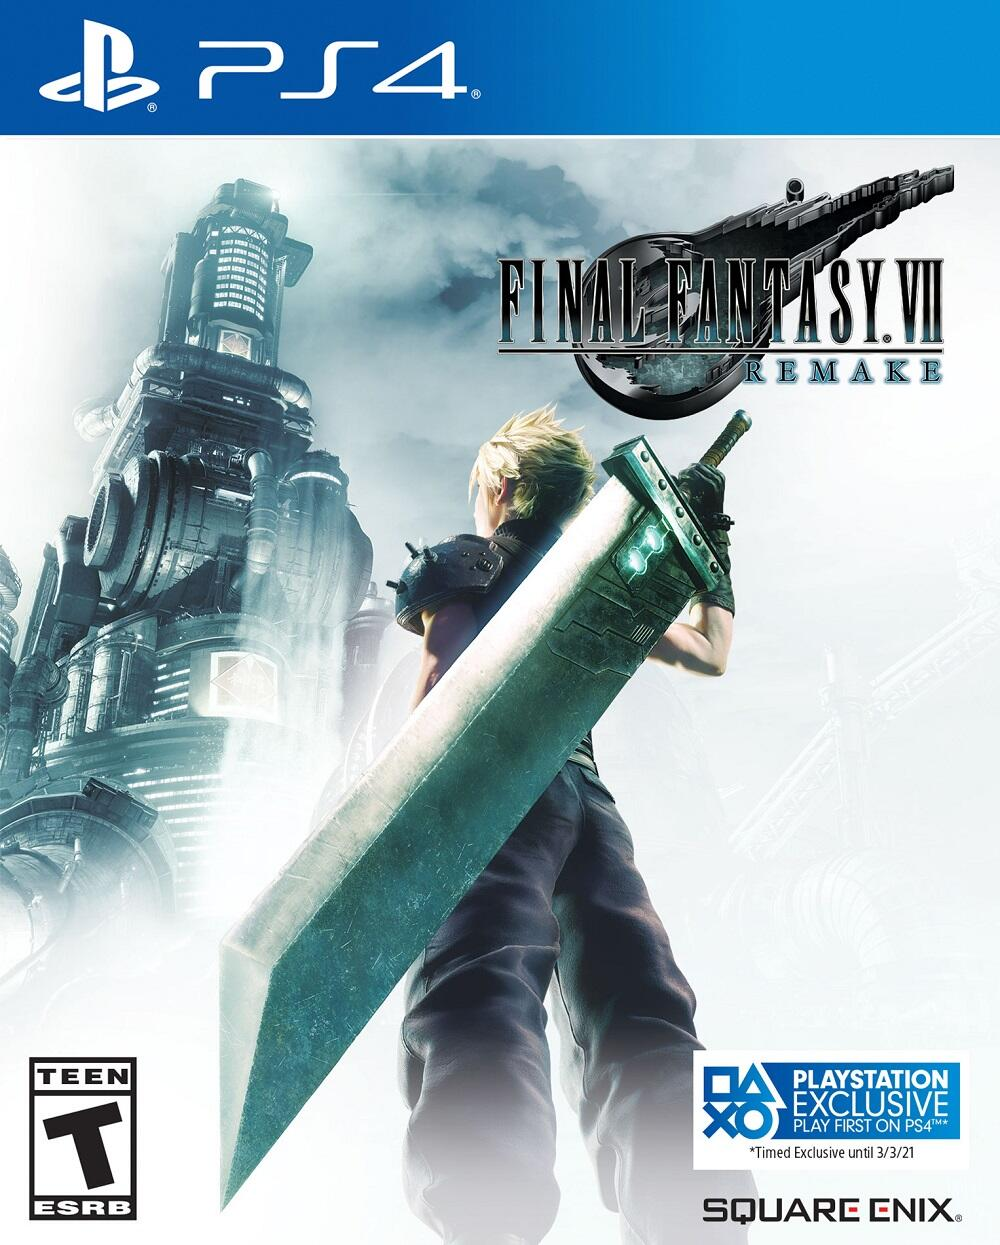 ff7-ps4-2d-v2-copy